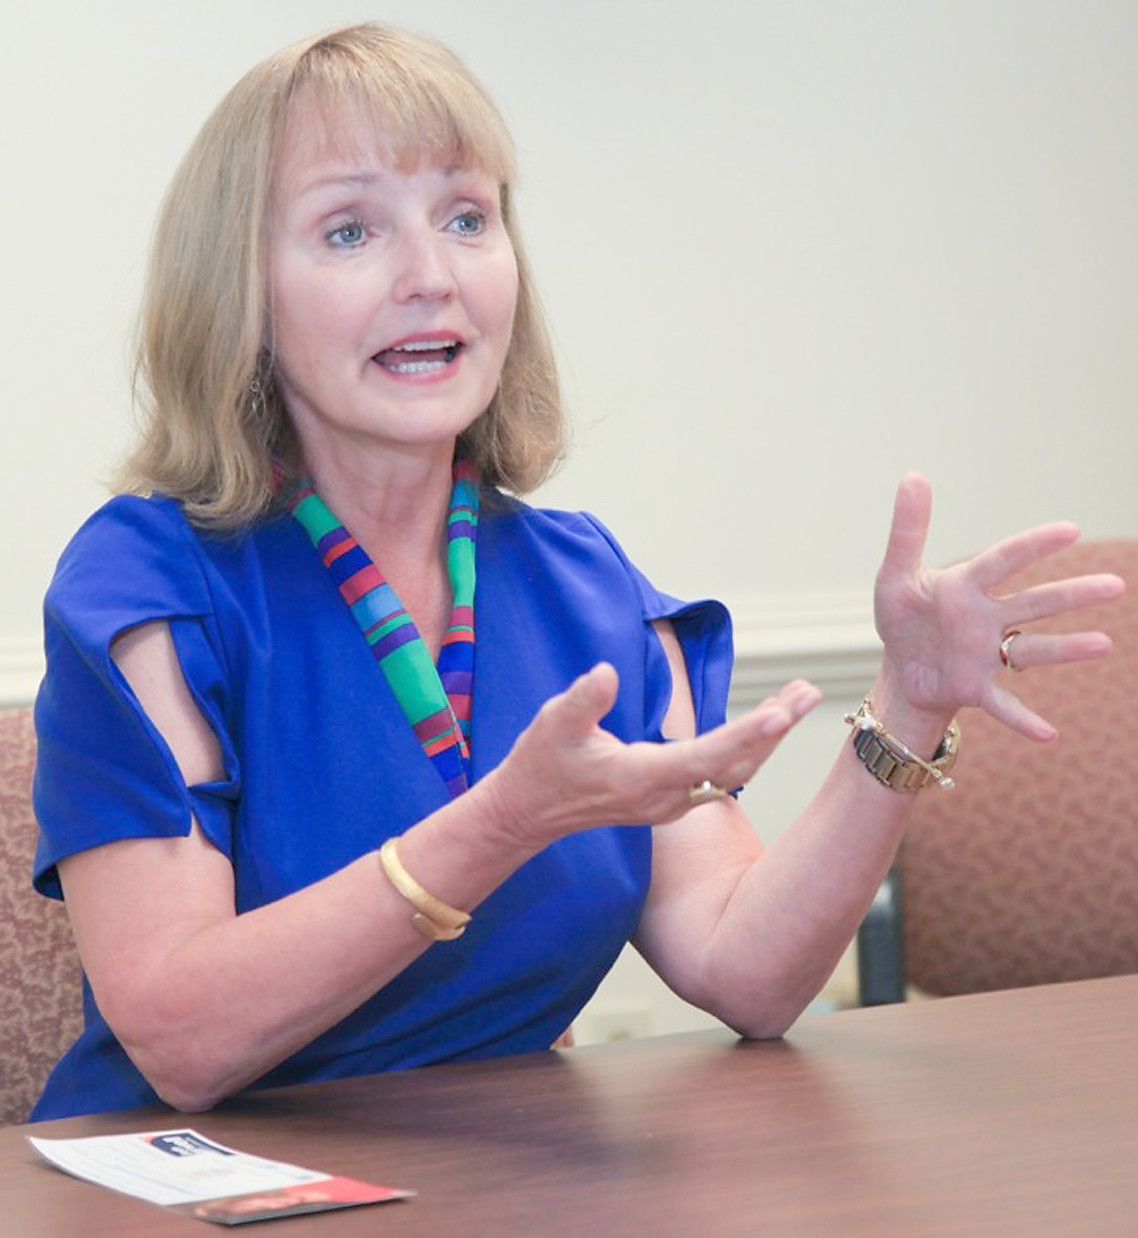 SPEAKER of the House Beth Harwell visited the Cleveland Daily Banner on Tuesday to discuss a variety of topics affecting Tennessee.